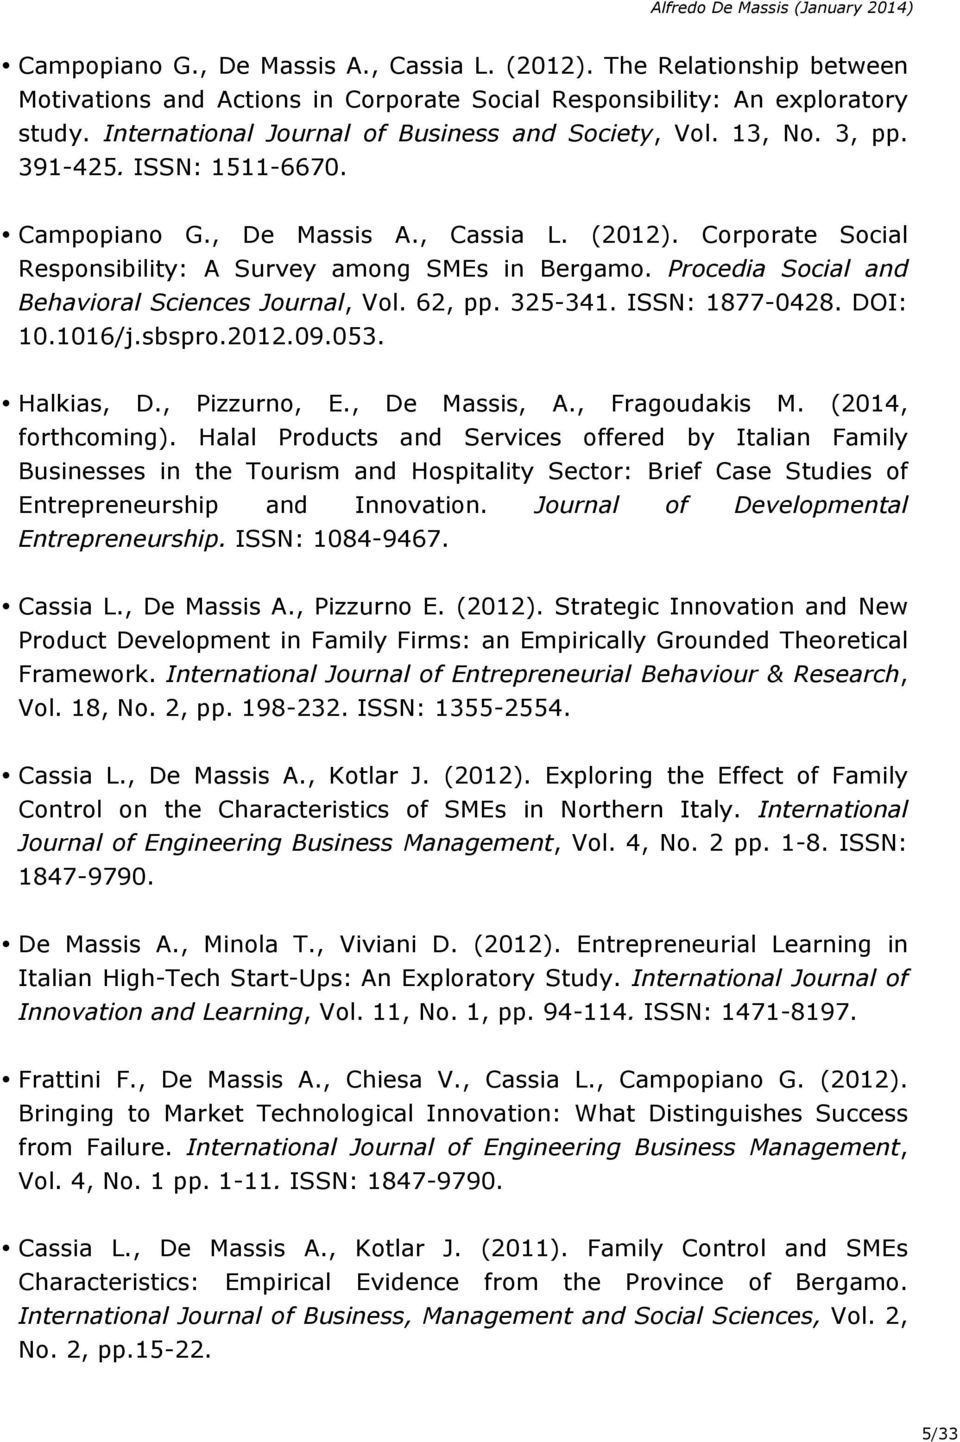 Corporate Social Responsibility: A Survey among SMEs in Bergamo. Procedia Social and Behavioral Sciences Journal, Vol. 62, pp. 325-341. ISSN: 1877-0428. DOI: 10.1016/j.sbspro.2012.09.053. Halkias, D.